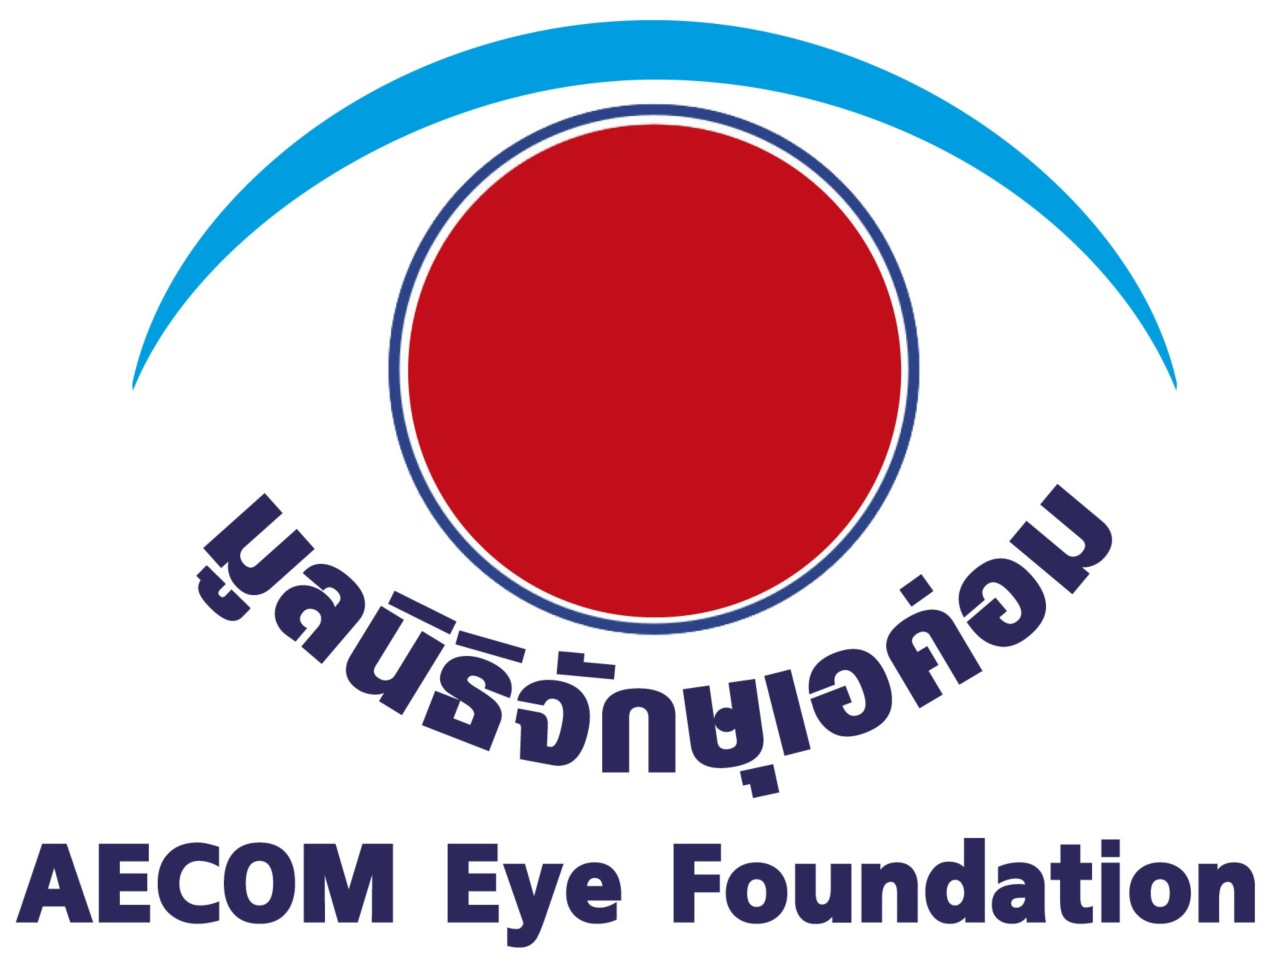 Aecom Eye Foundation logo